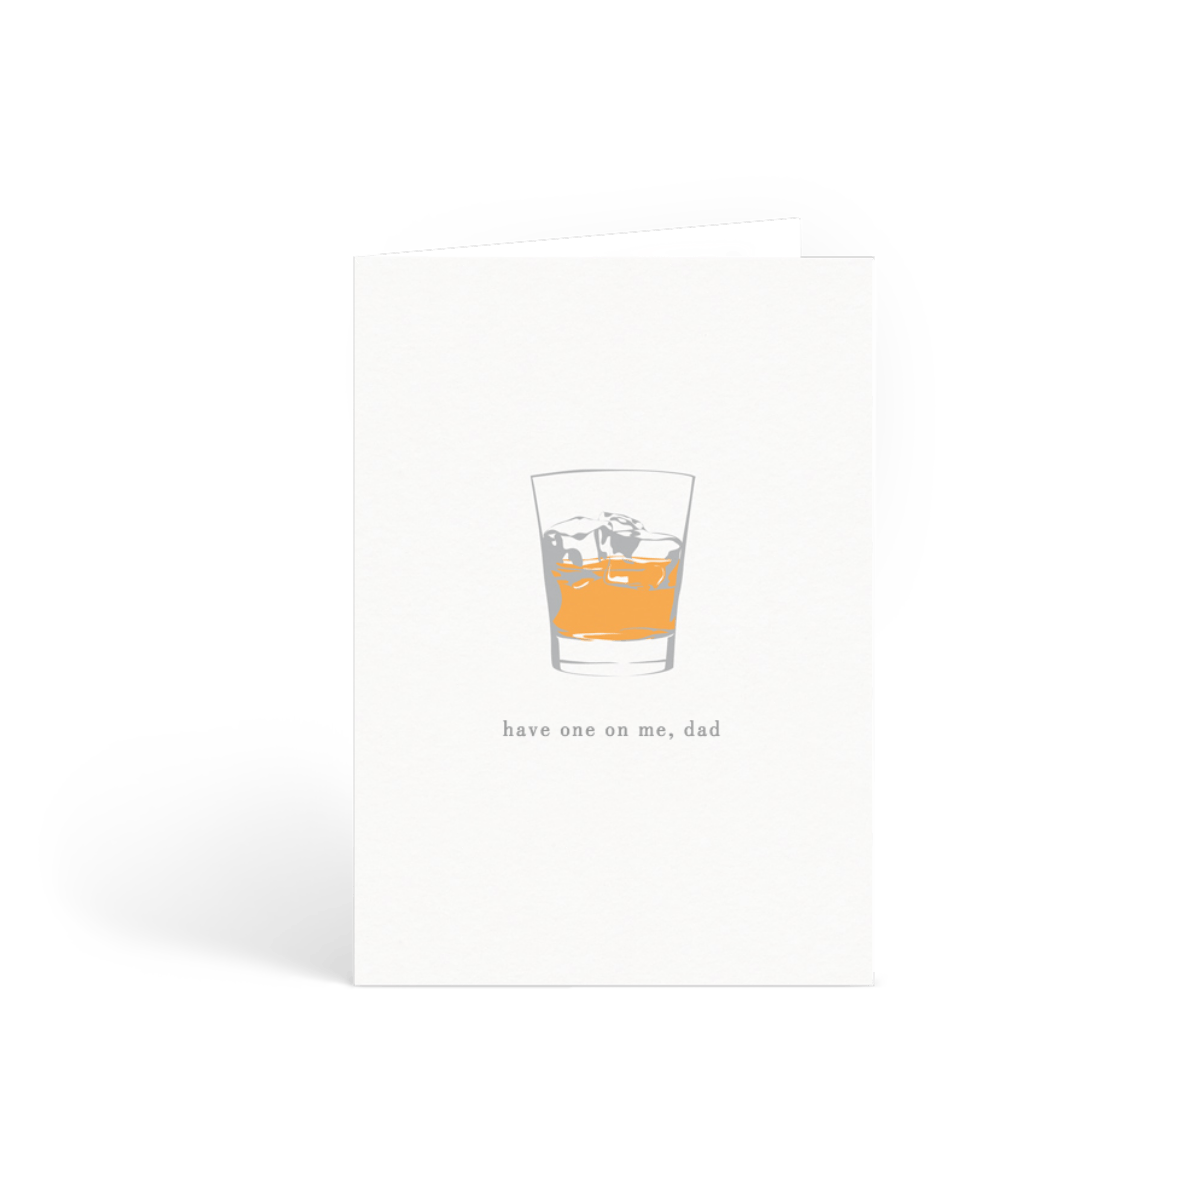 Https%3a%2f%2fwww.papier.com%2fproduct image%2f5074%2f2%2ffather s day whiskey 1320 front 1458150405.png?ixlib=rb 1.1